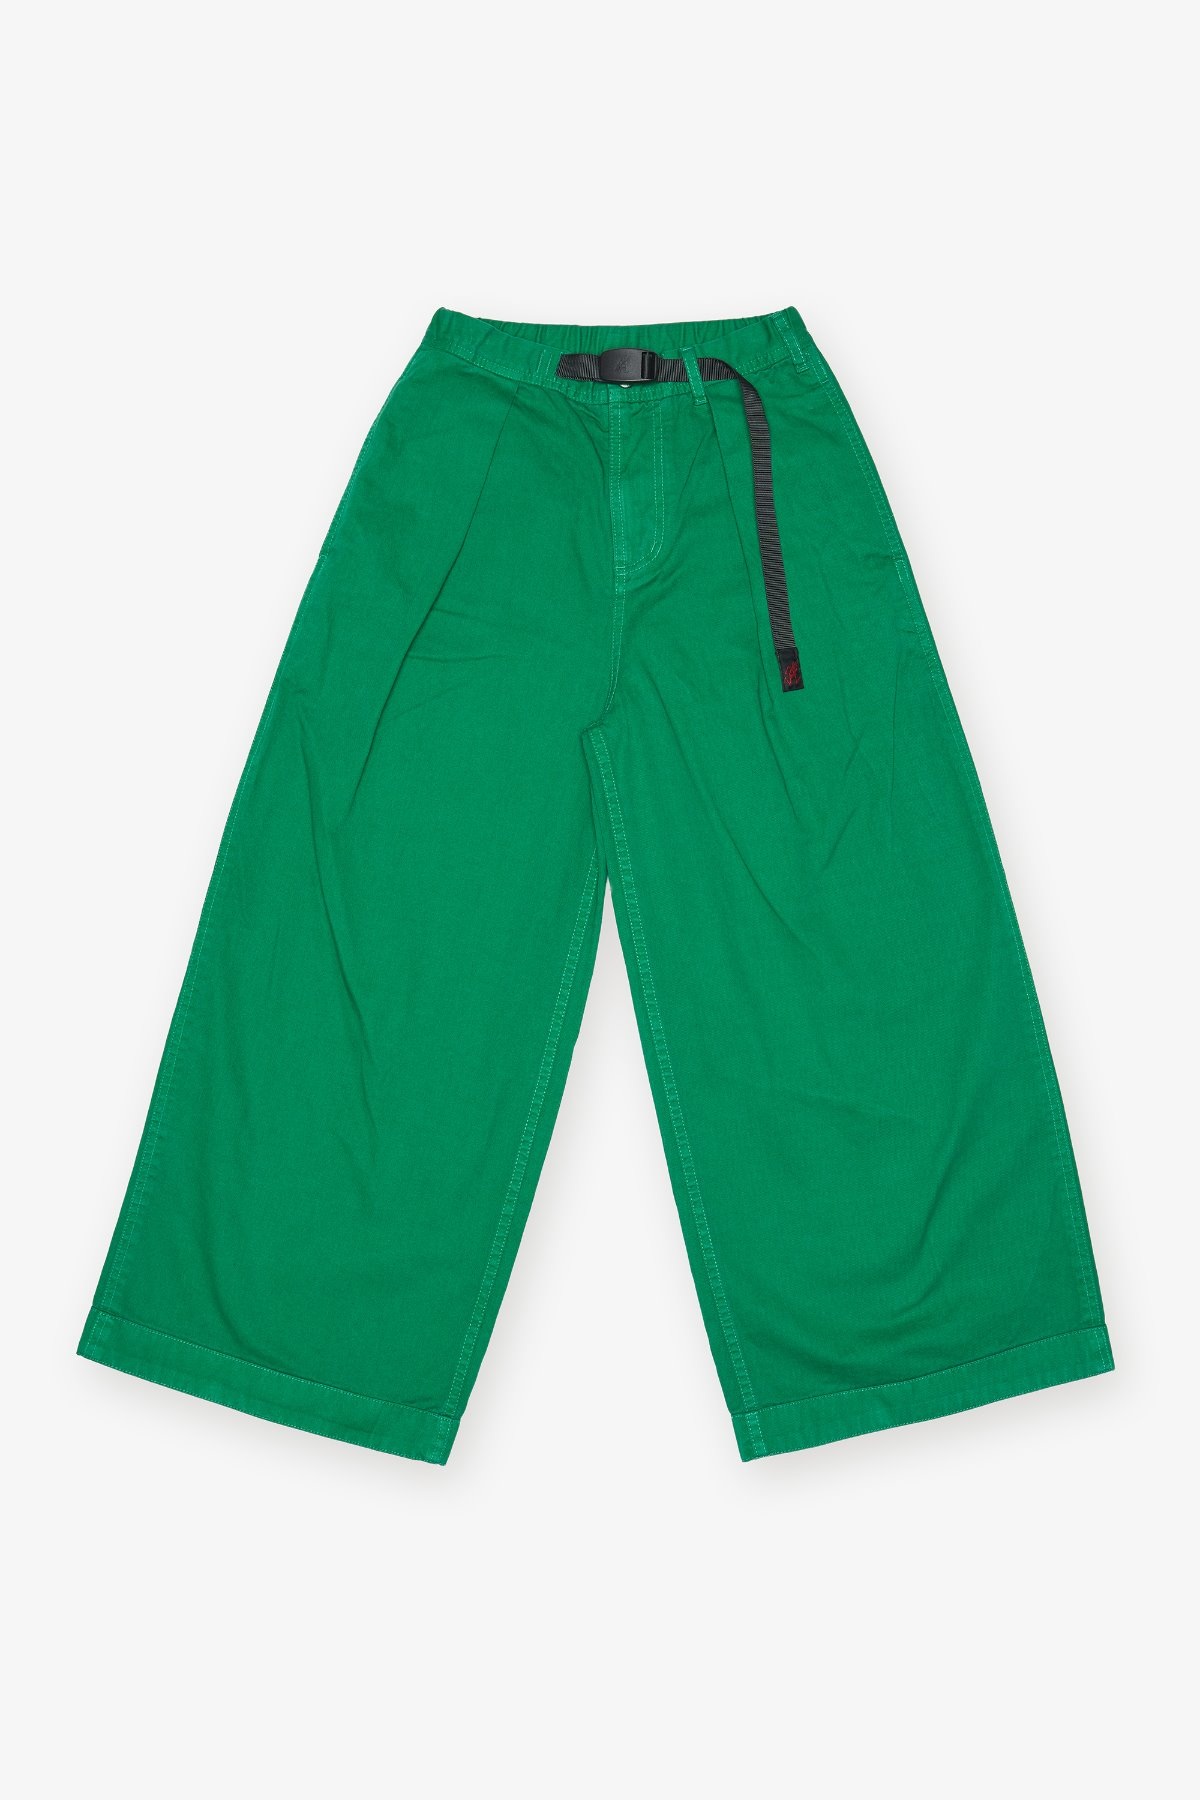 BAGGY PANTS MIDDLE GREEN